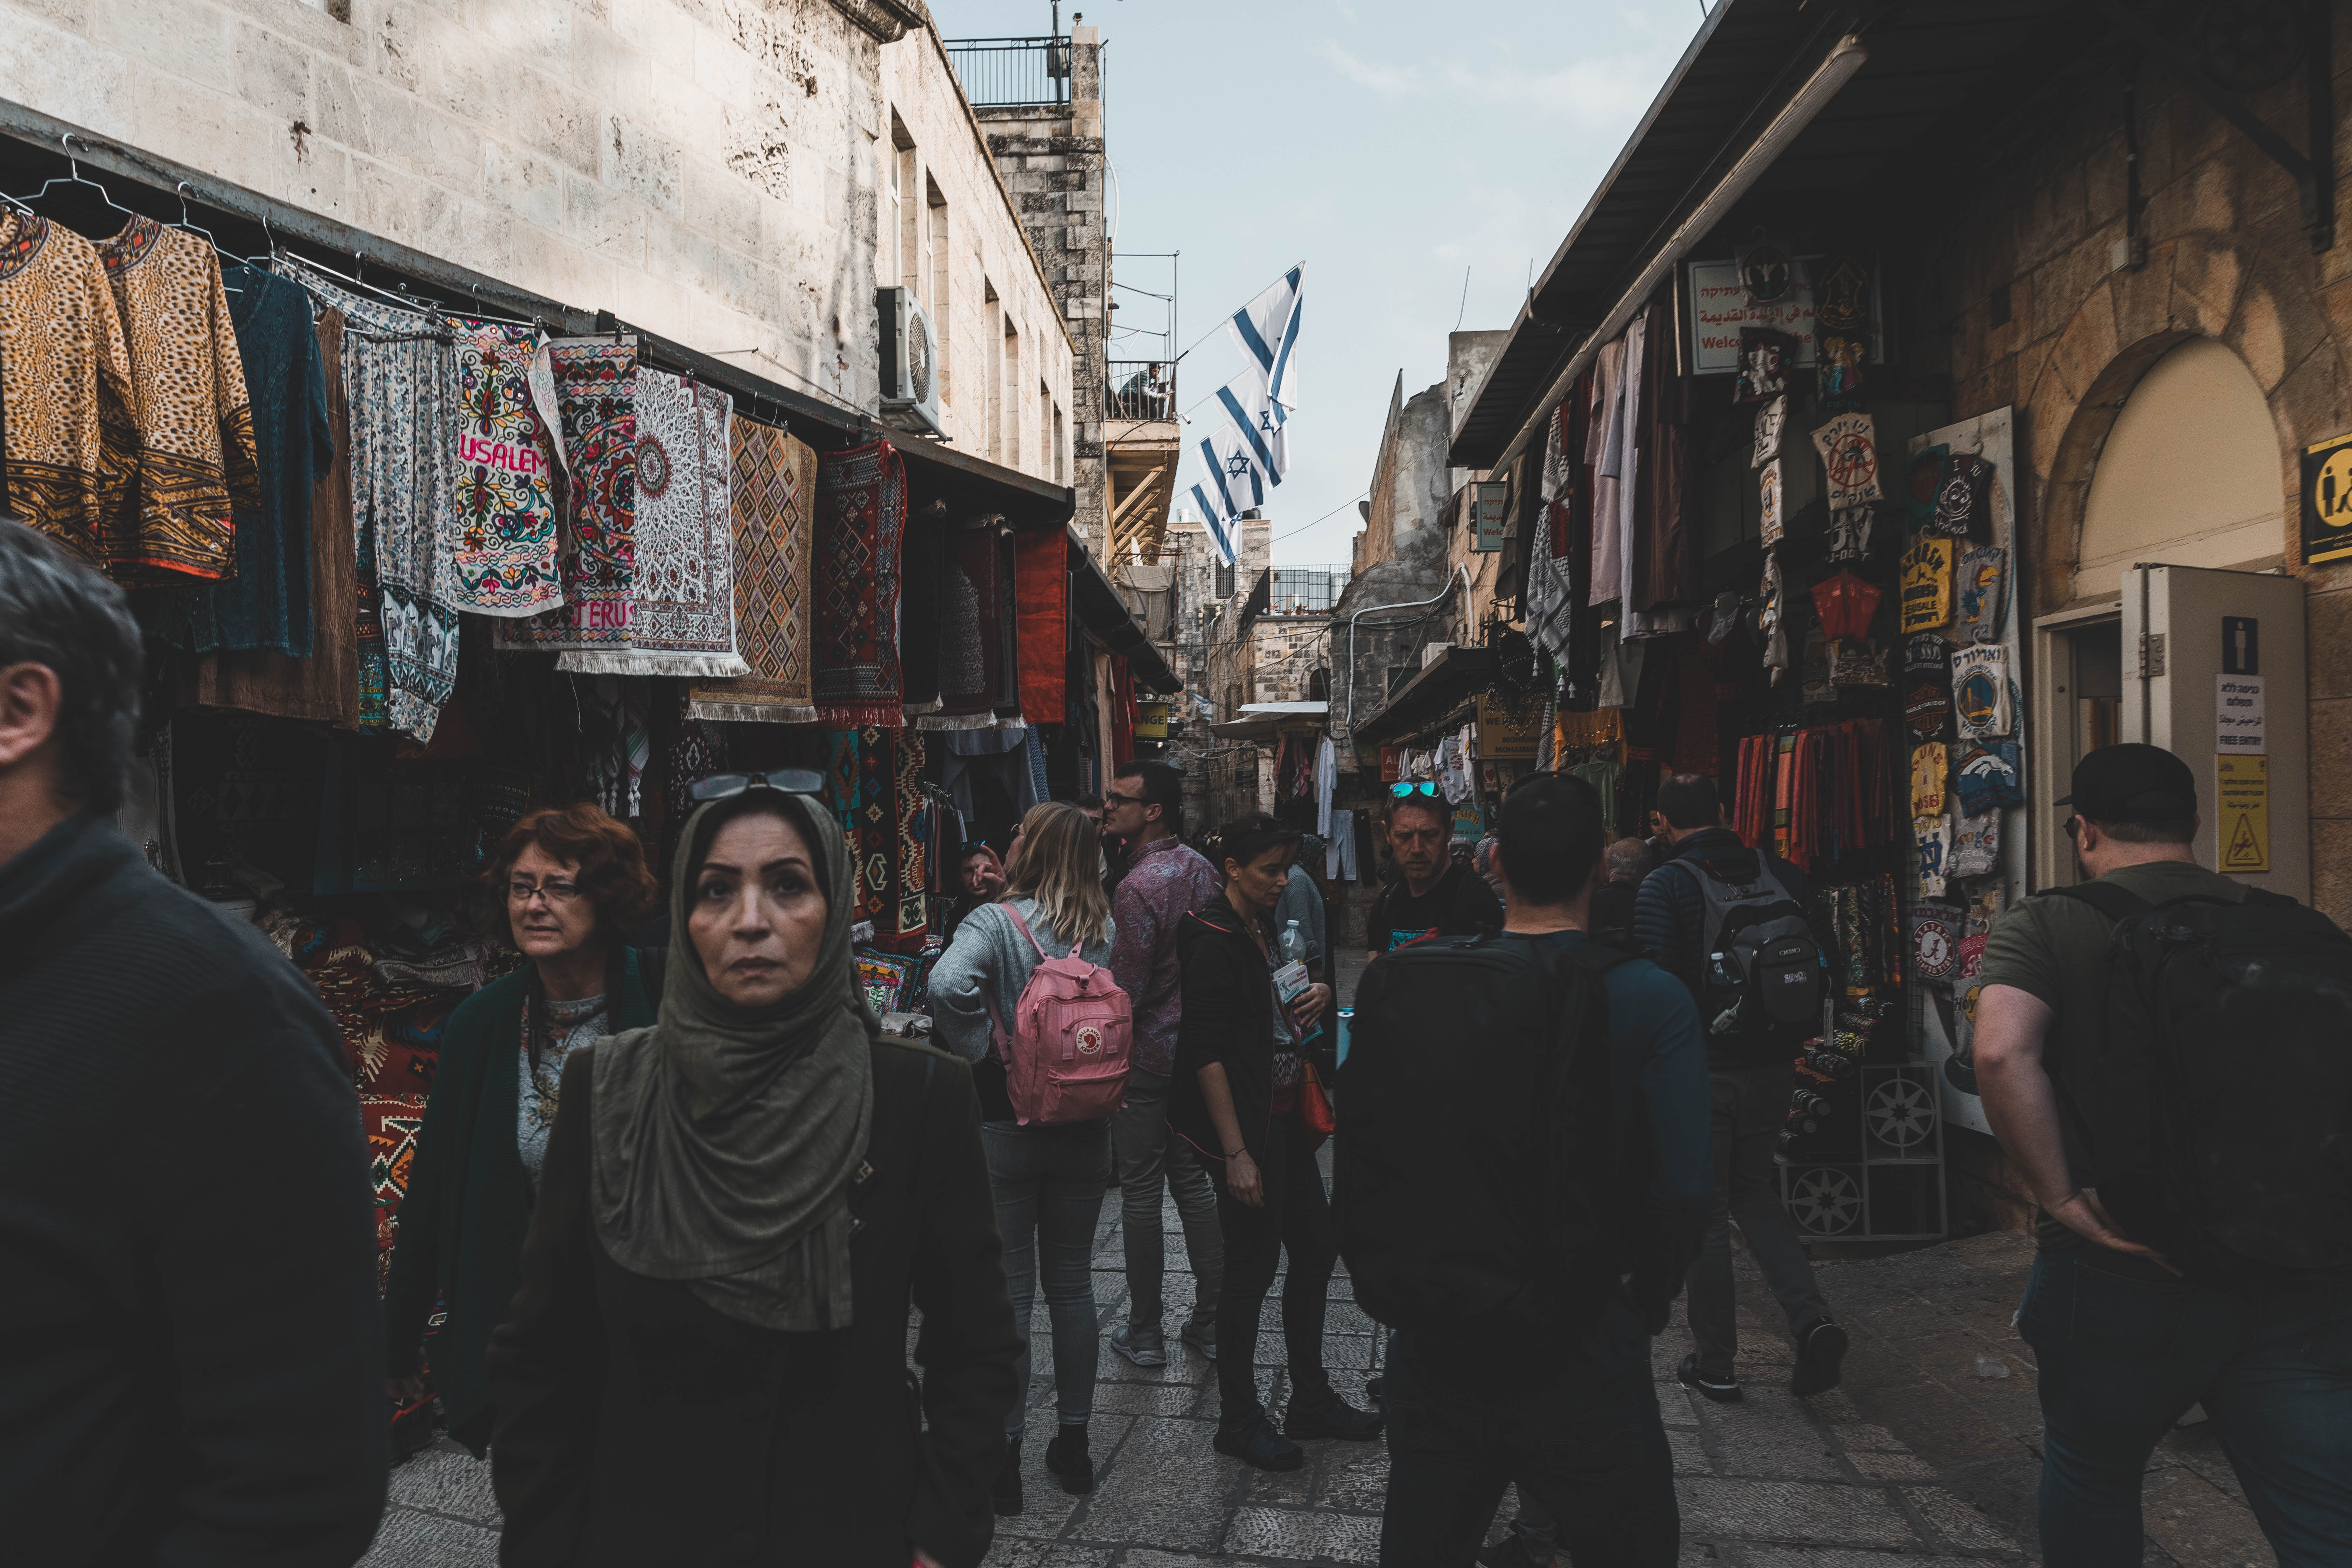 An image of pedestrians at a street market in Israel/Palestine.